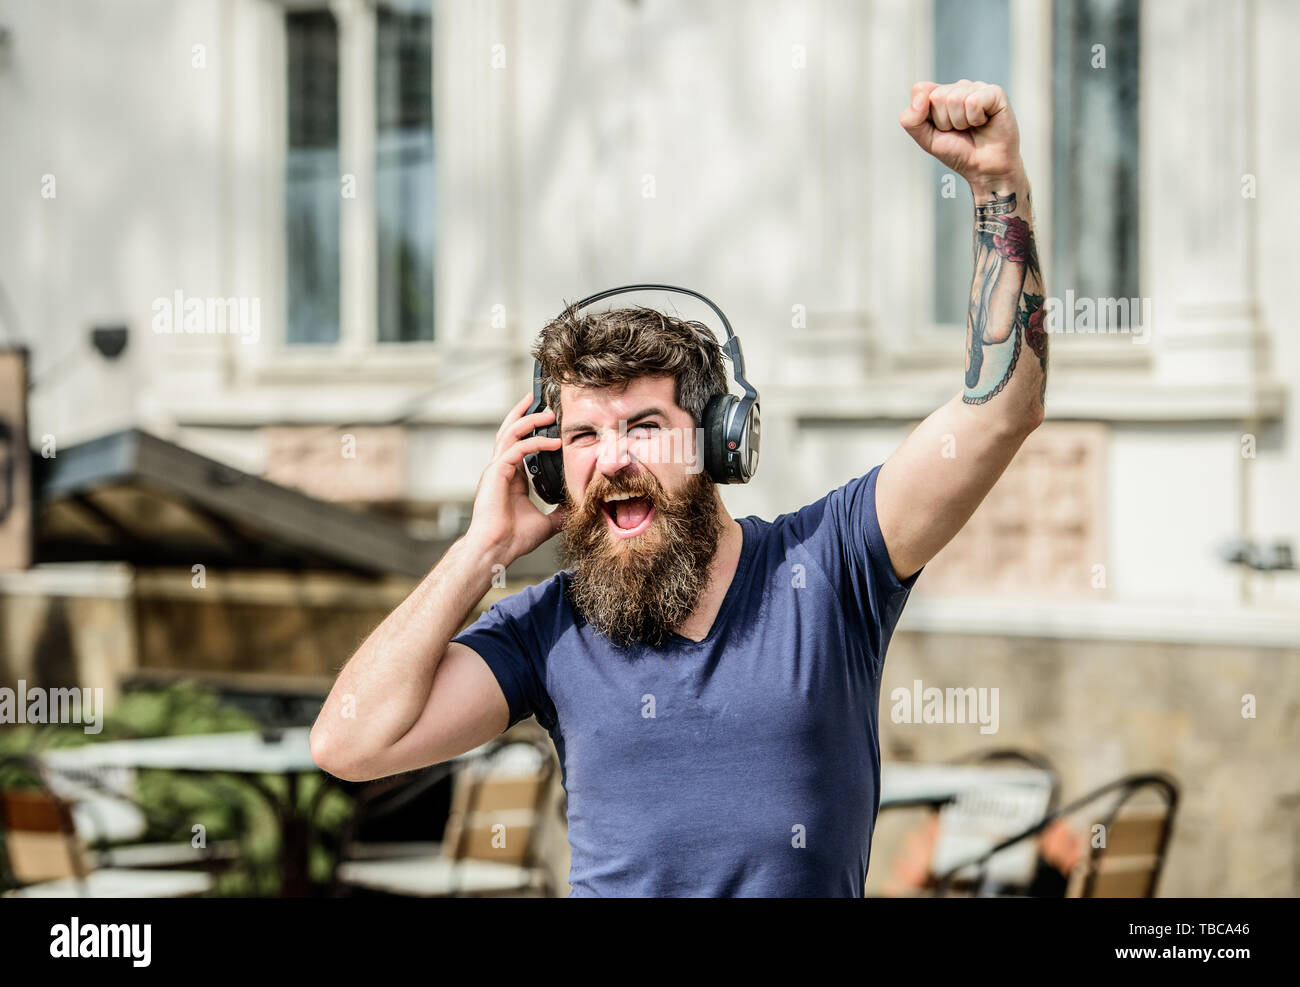 Man listen to music in headphones. brutal caucasian hipster with moustache. Music is my religion. Enjoying music. Mature hipster with beard. Sharing favorite music. Bearded man. - Stock Image